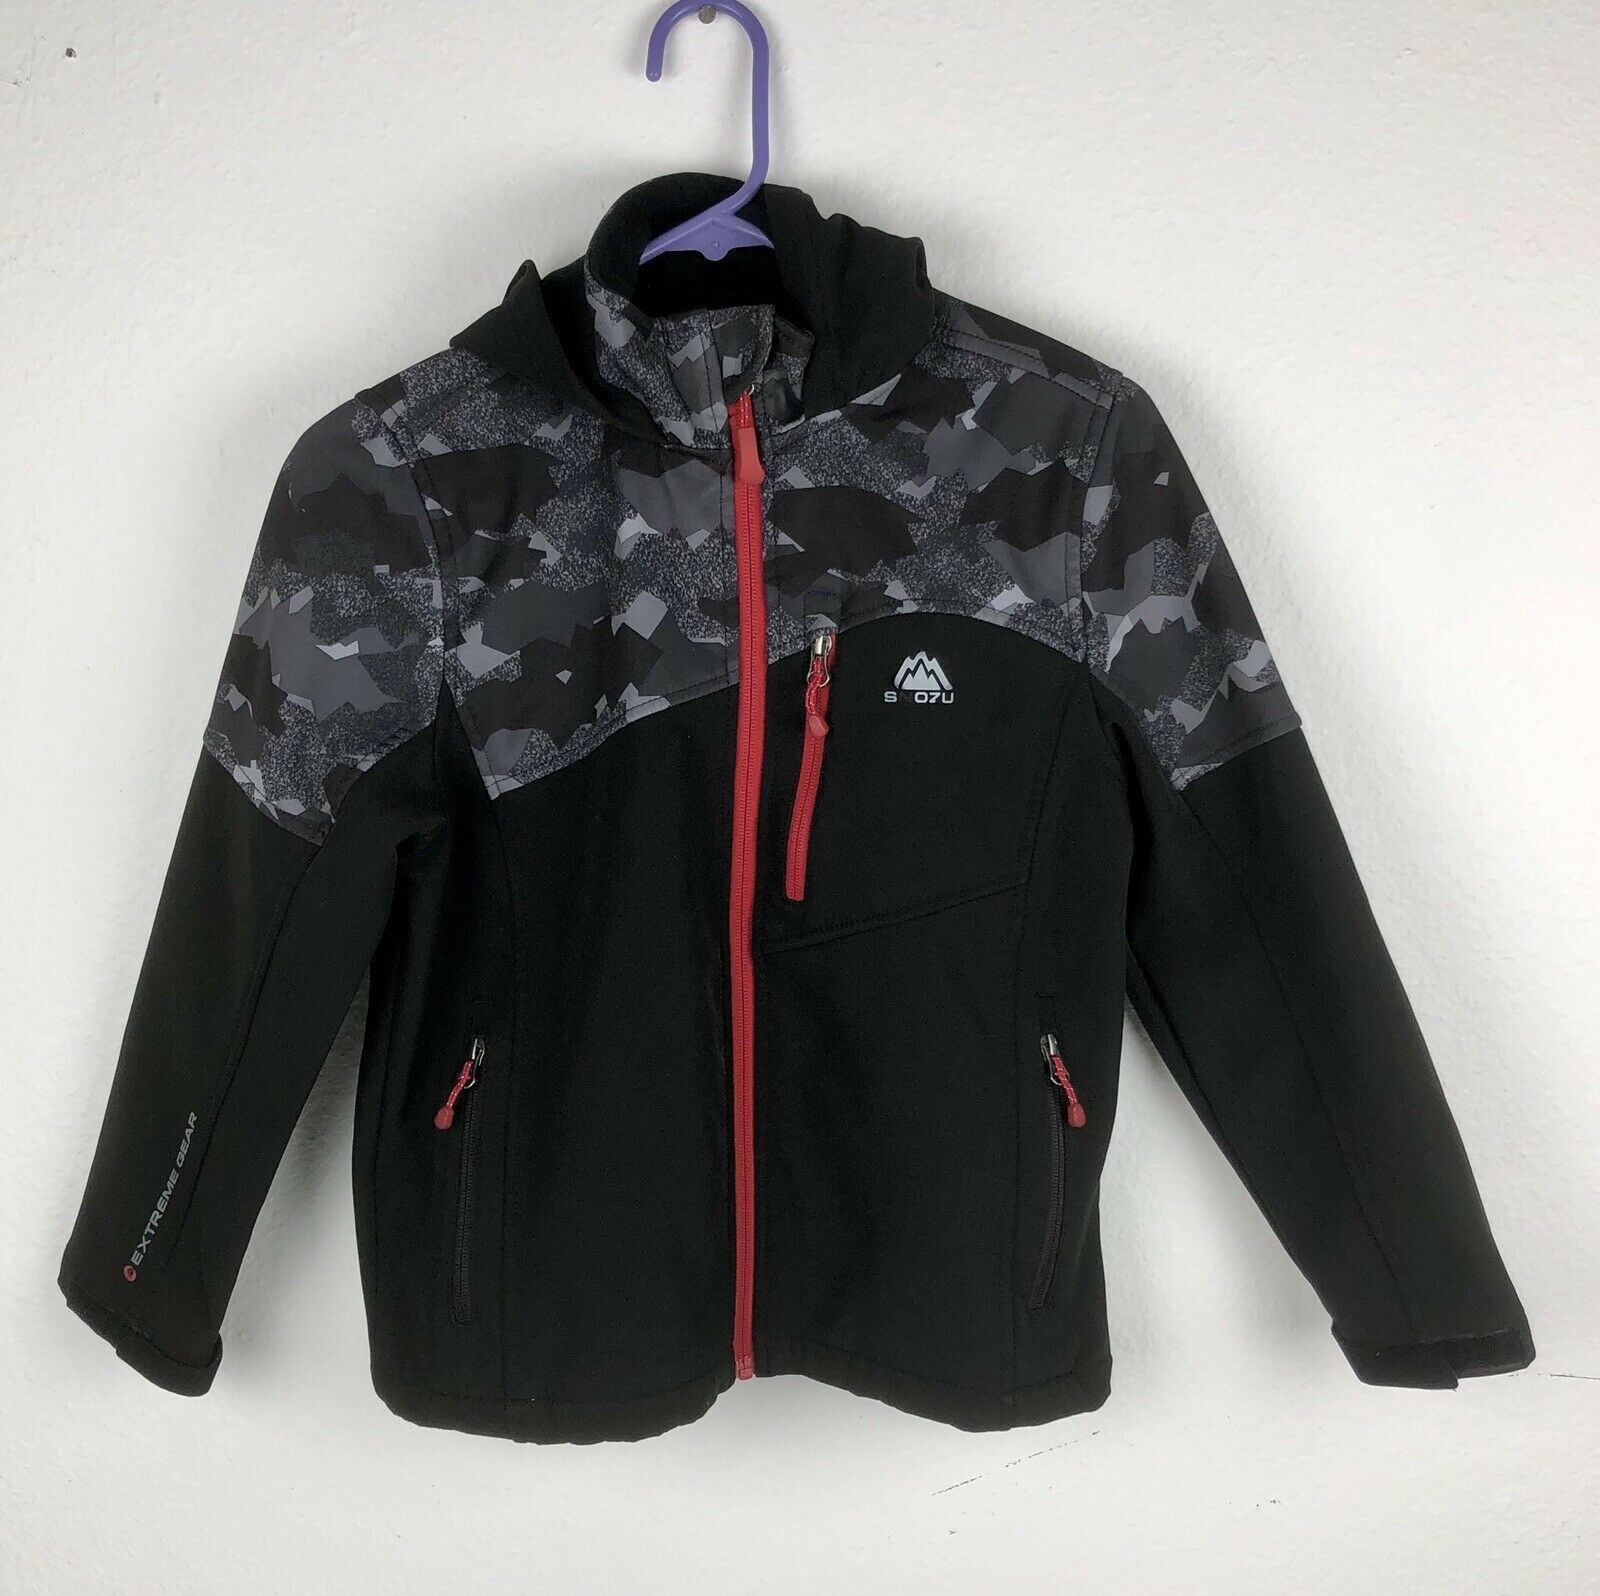 Primary image for Snozu Boy M 10/12 Full Zip Hooded Softshell Jacket Gray Red Camo C-1